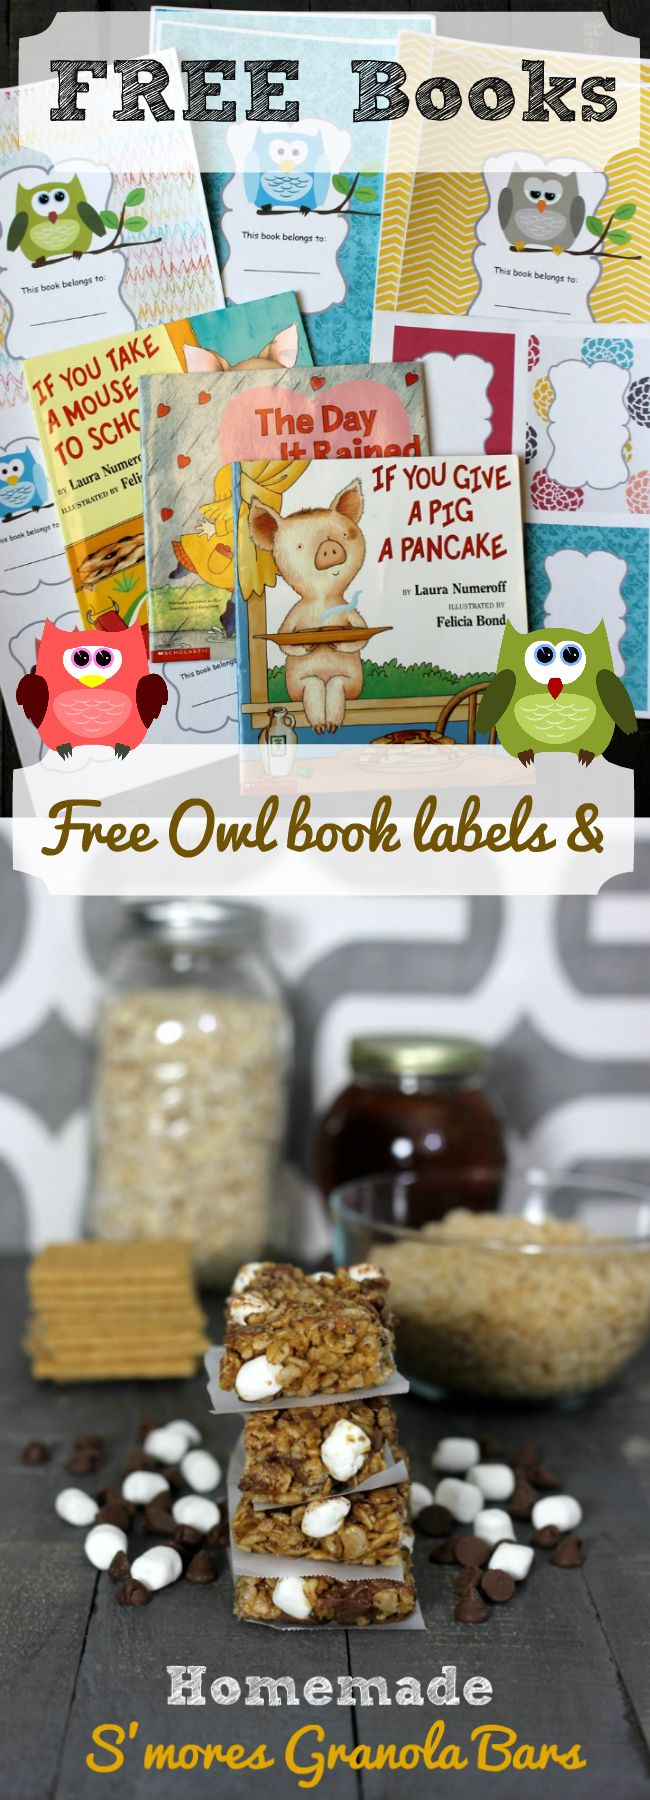 FREE Books Free Owl book labels and Homemade Smores Granola Bars recipe from HappyandBlessedHome.com perfect for teachers, parents and homeschoolers who want beautiful labels and free books for building their personal libraries. Includes homemade no bake S'mores Granola Bars recipe. #Back2SchoolReady #ad #cbias | free printables | free book covers | free book labels